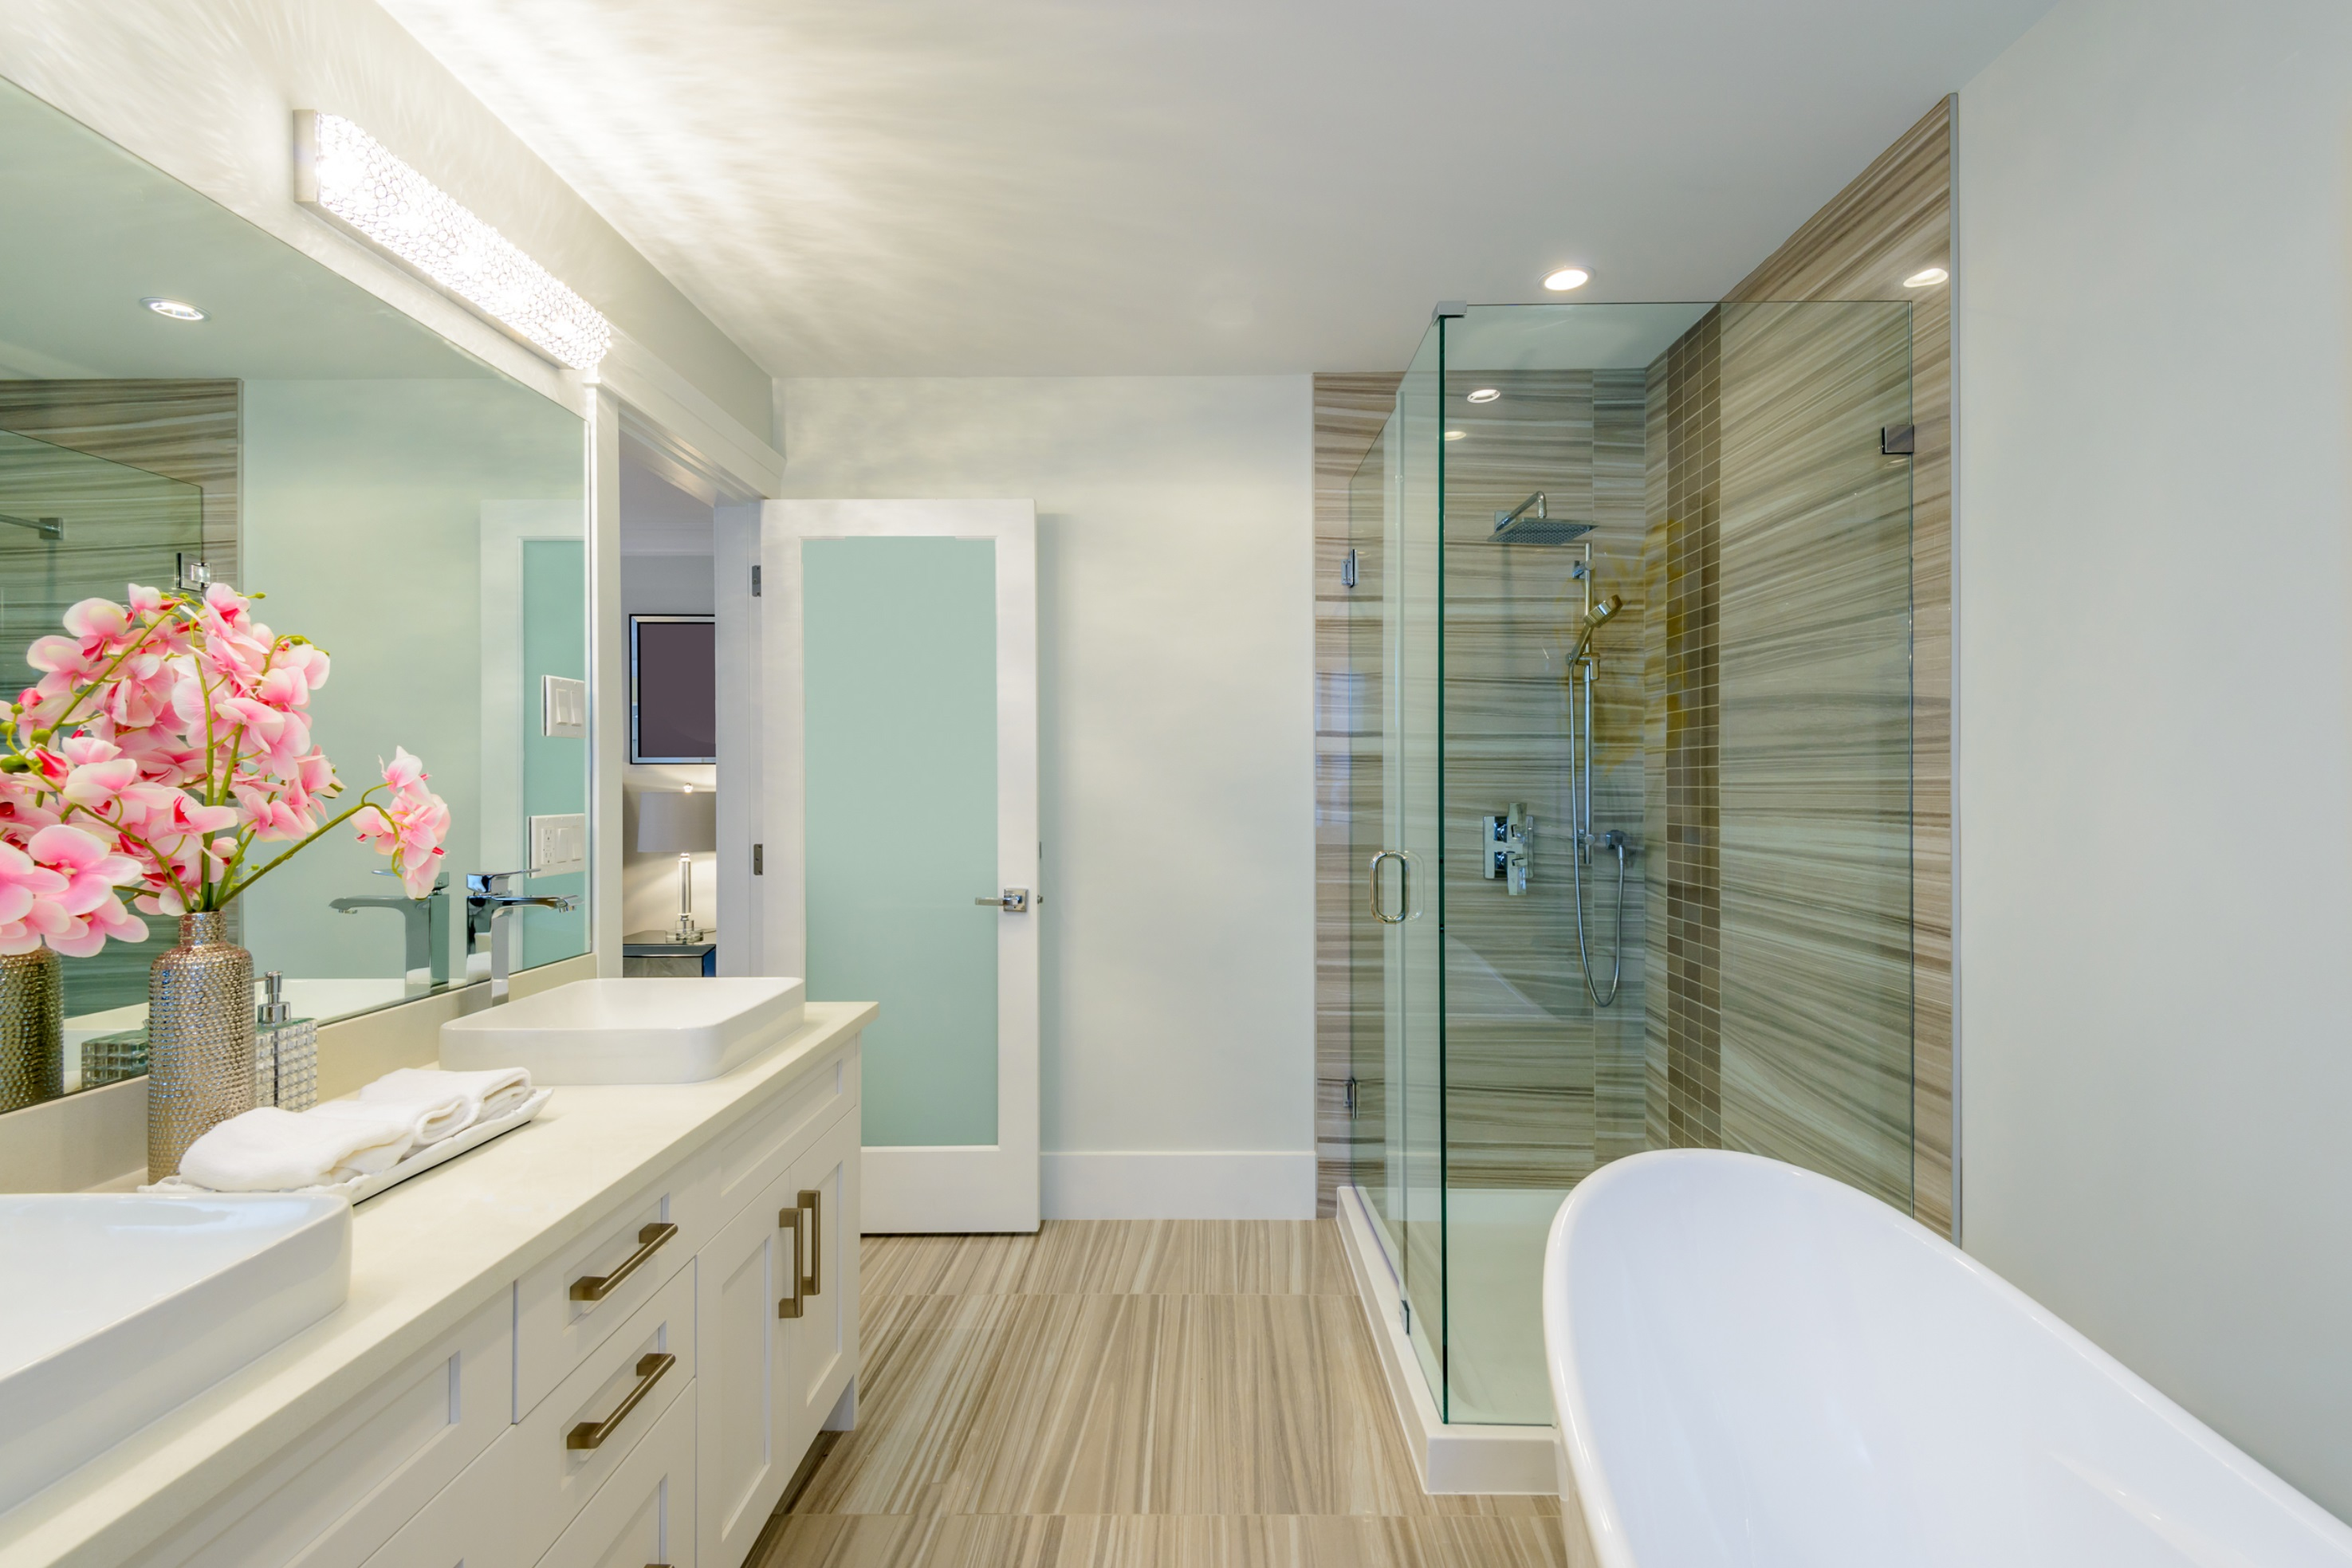 Ariel-Builders-Bathroom-Remodeling-6